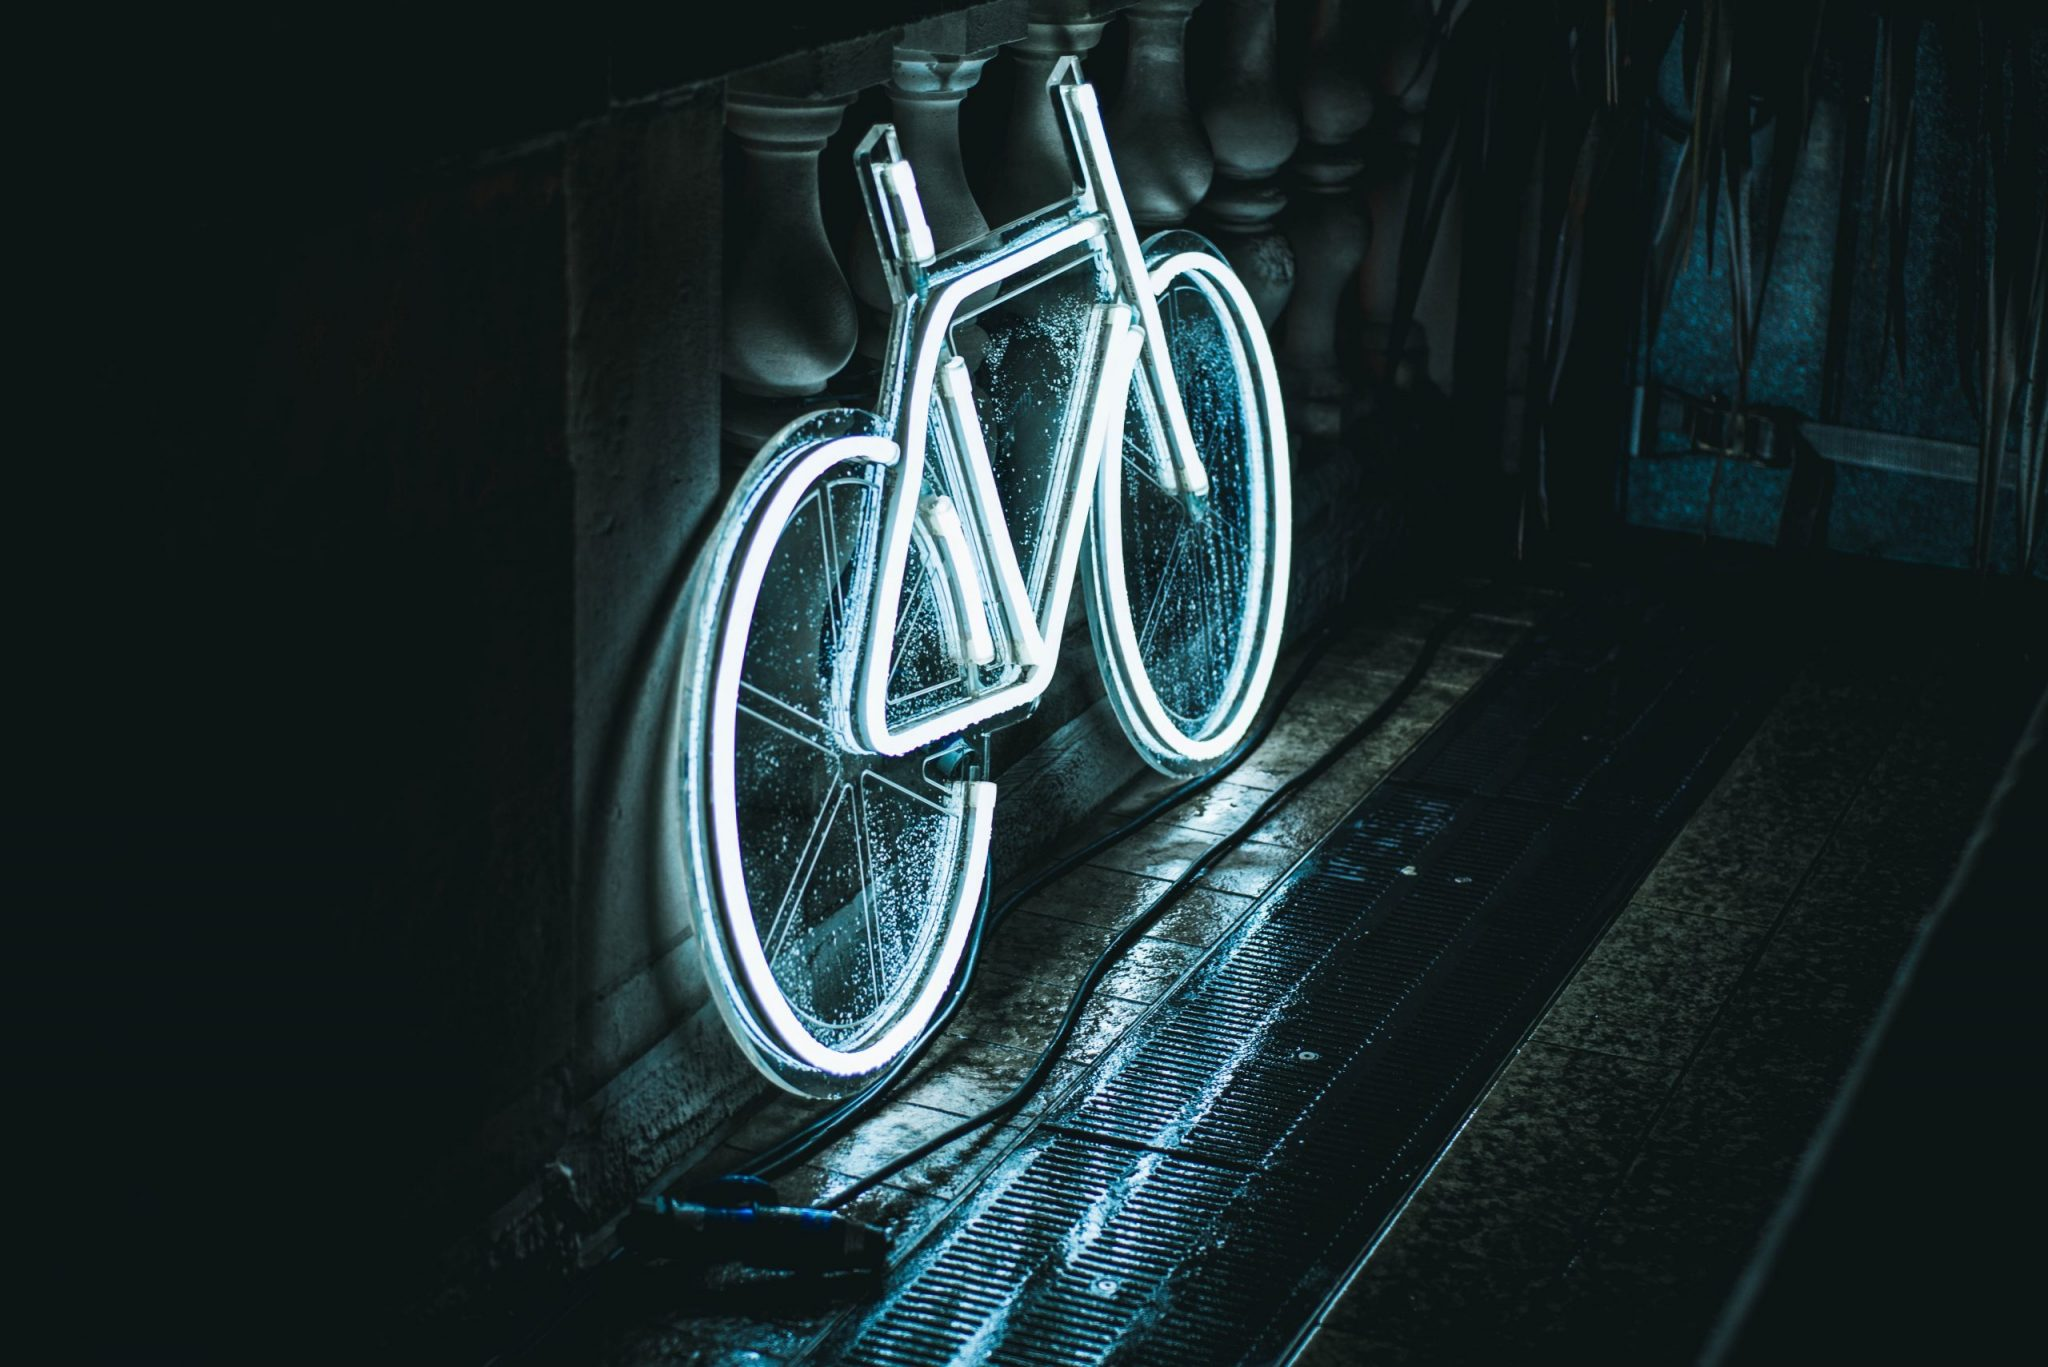 Bike Light Powered By Pedaling